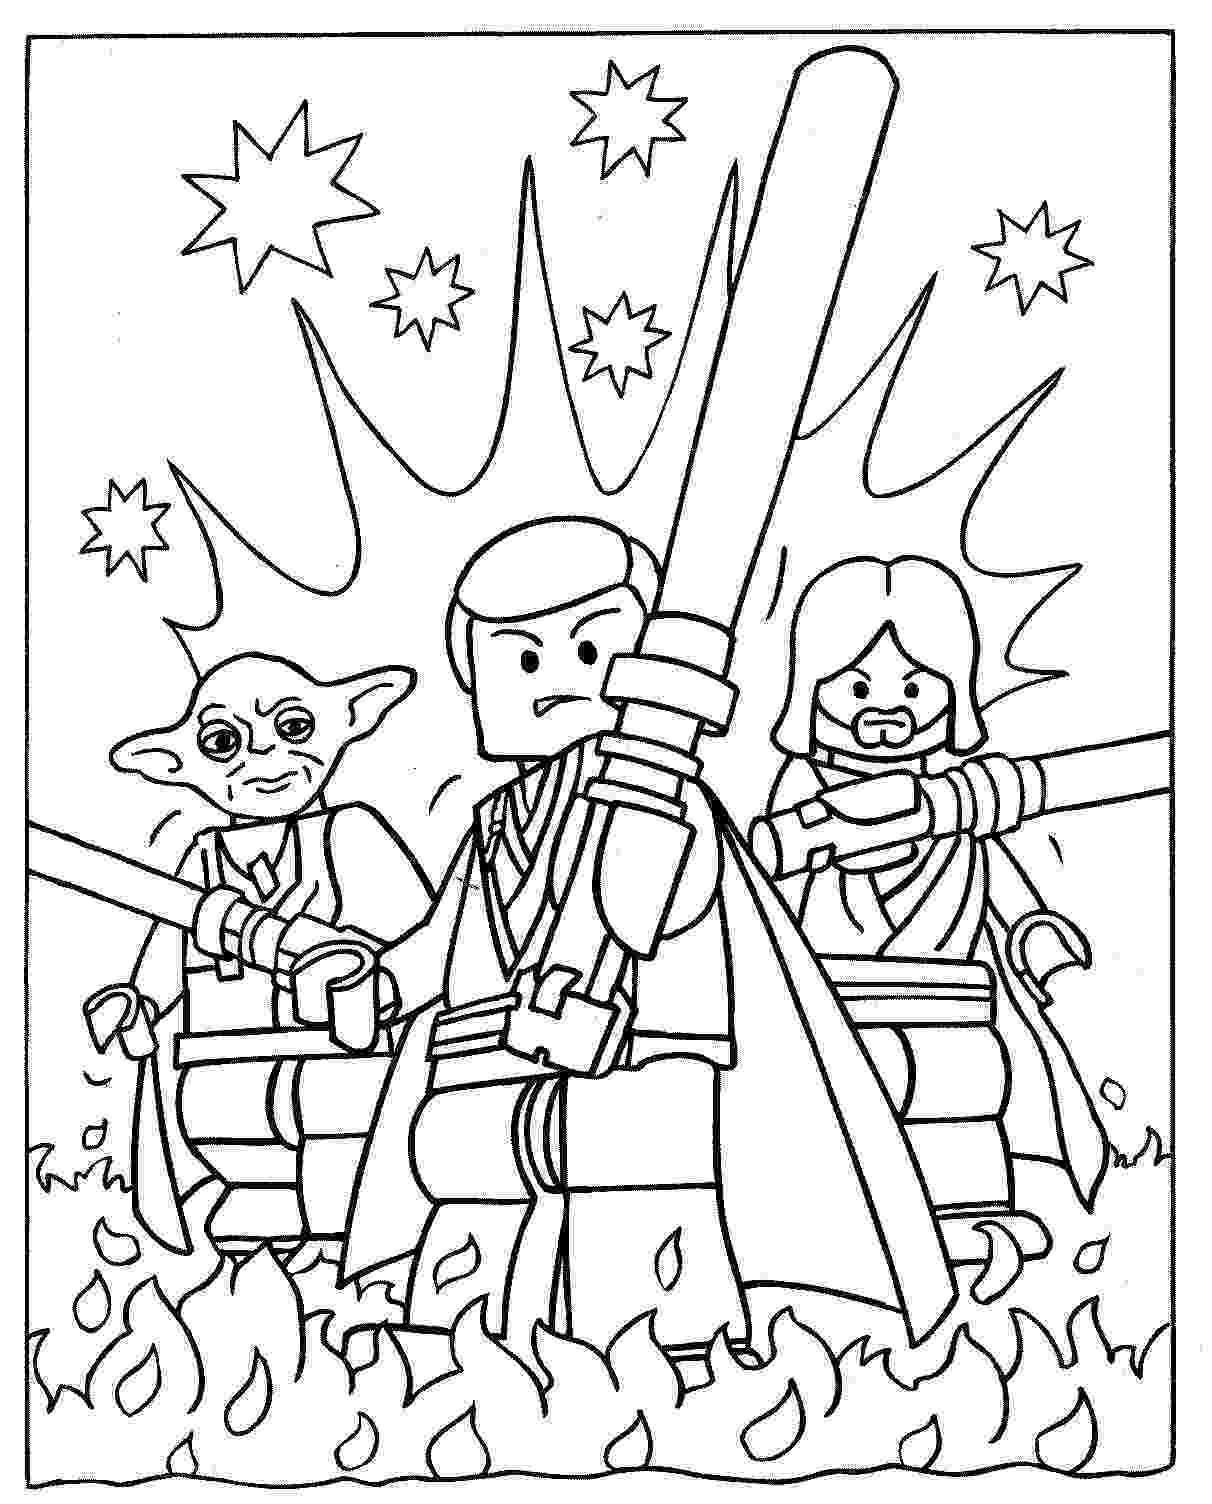 star wars coloring pages printable homeschooling on the bayou john williams composer study star pages coloring wars printable